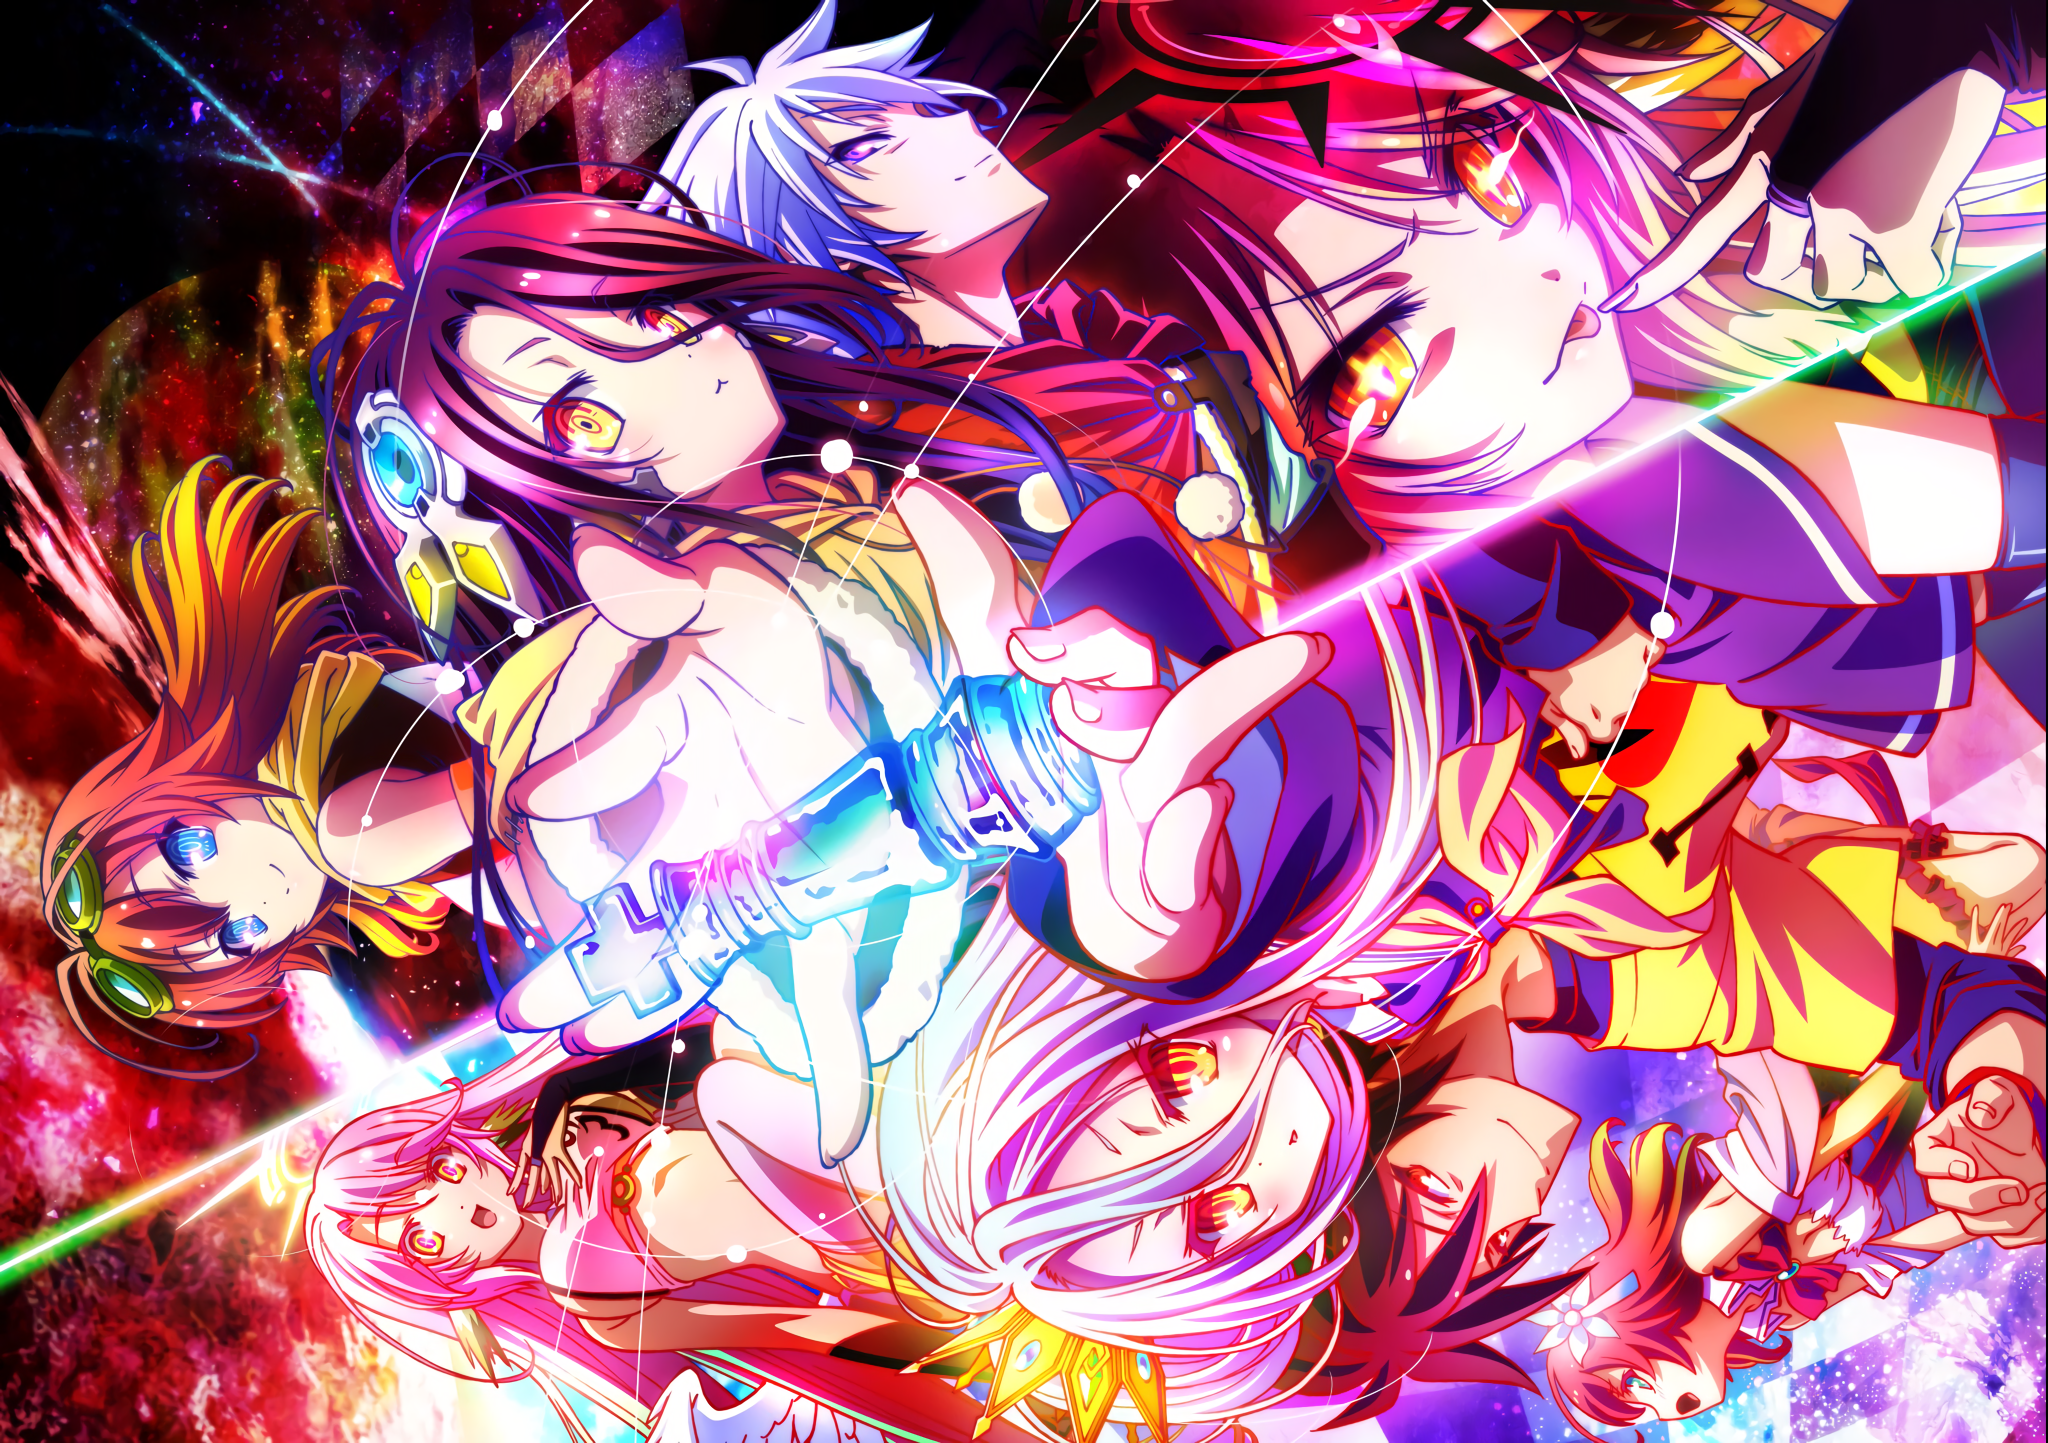 96 Jibril No Game No Life Hd Wallpapers Background Images